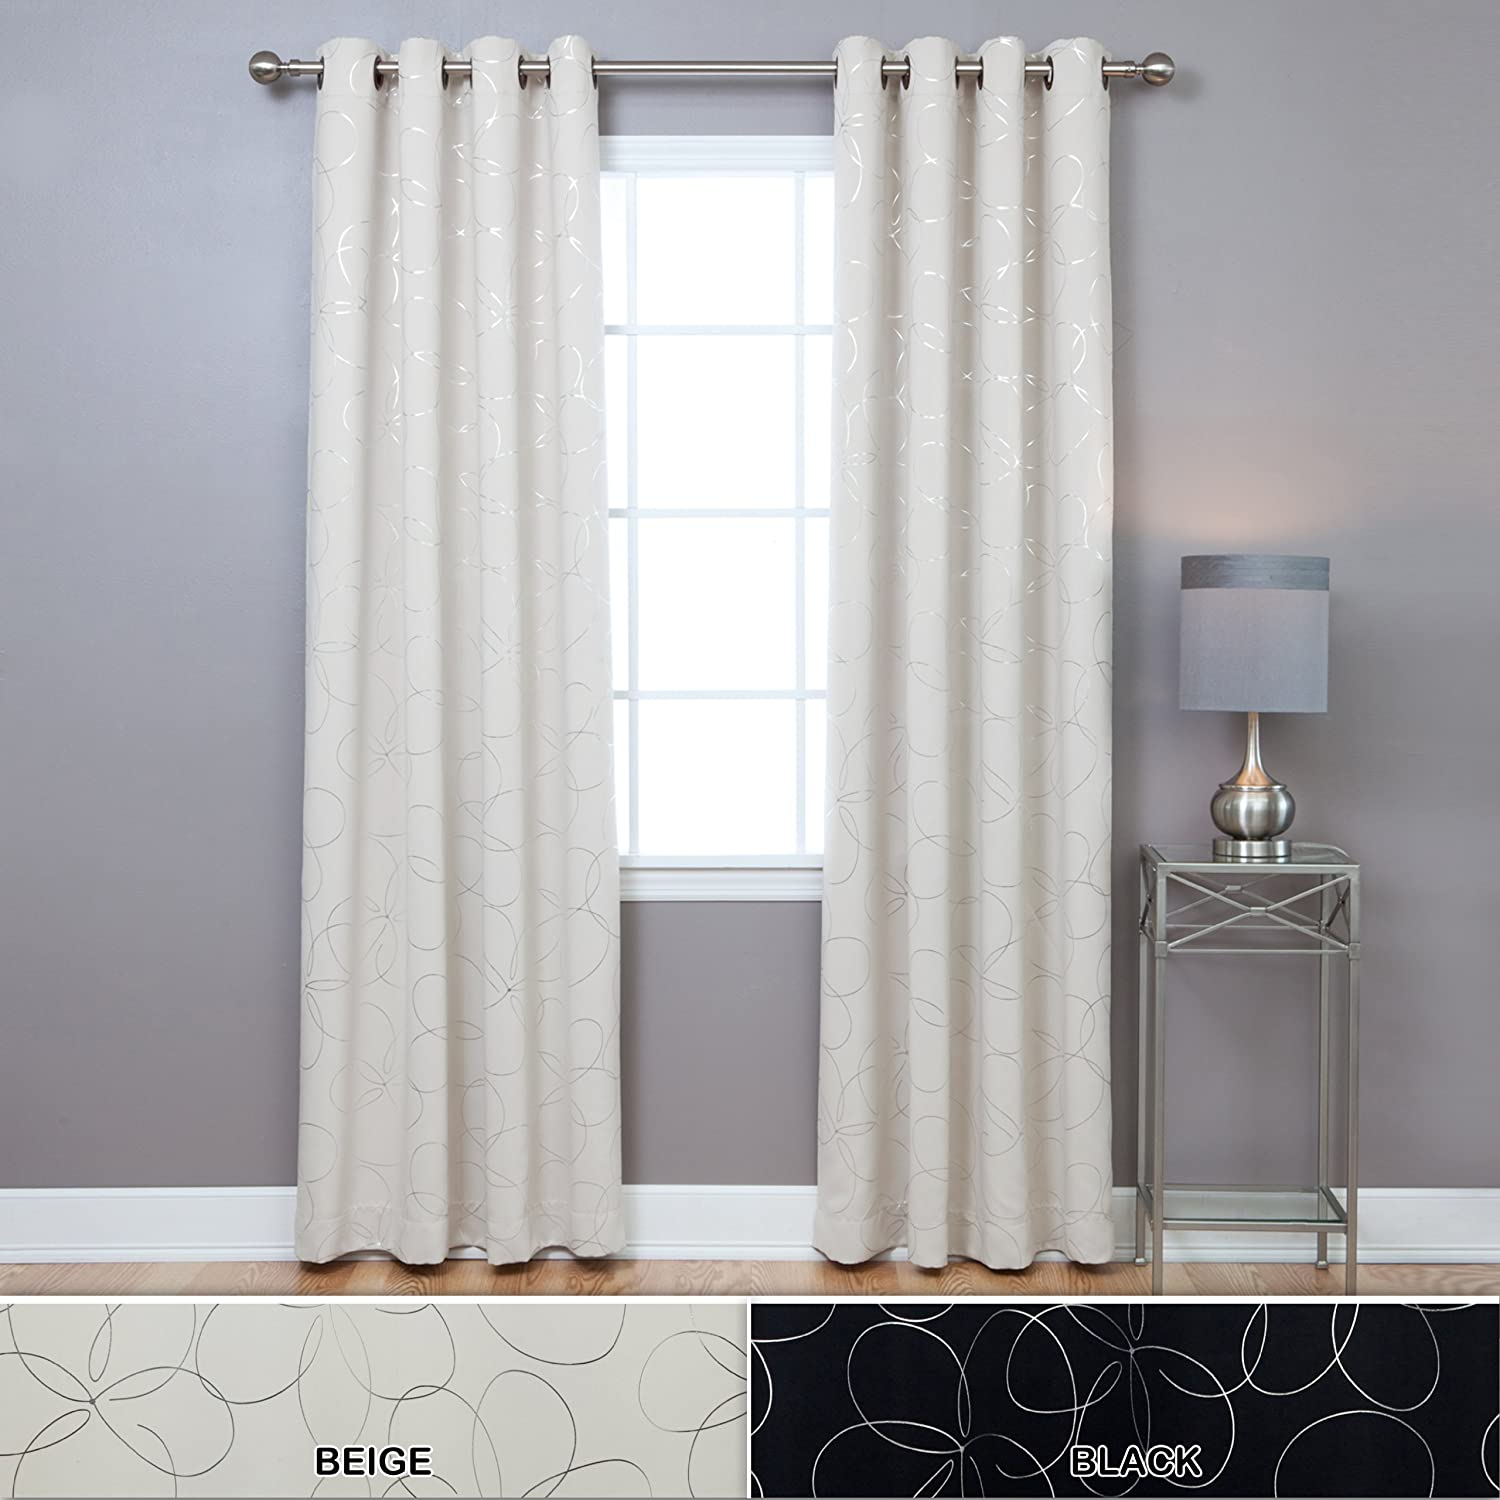 Curtain pair overstock shopping great deals on lights out curtains - Amazon Com Best Home Fashion Flower Foil Printed Thermal Insulated Blackout Curtains Antique Bronze Grommet Top Black 52 W X 84 L Set Of 2